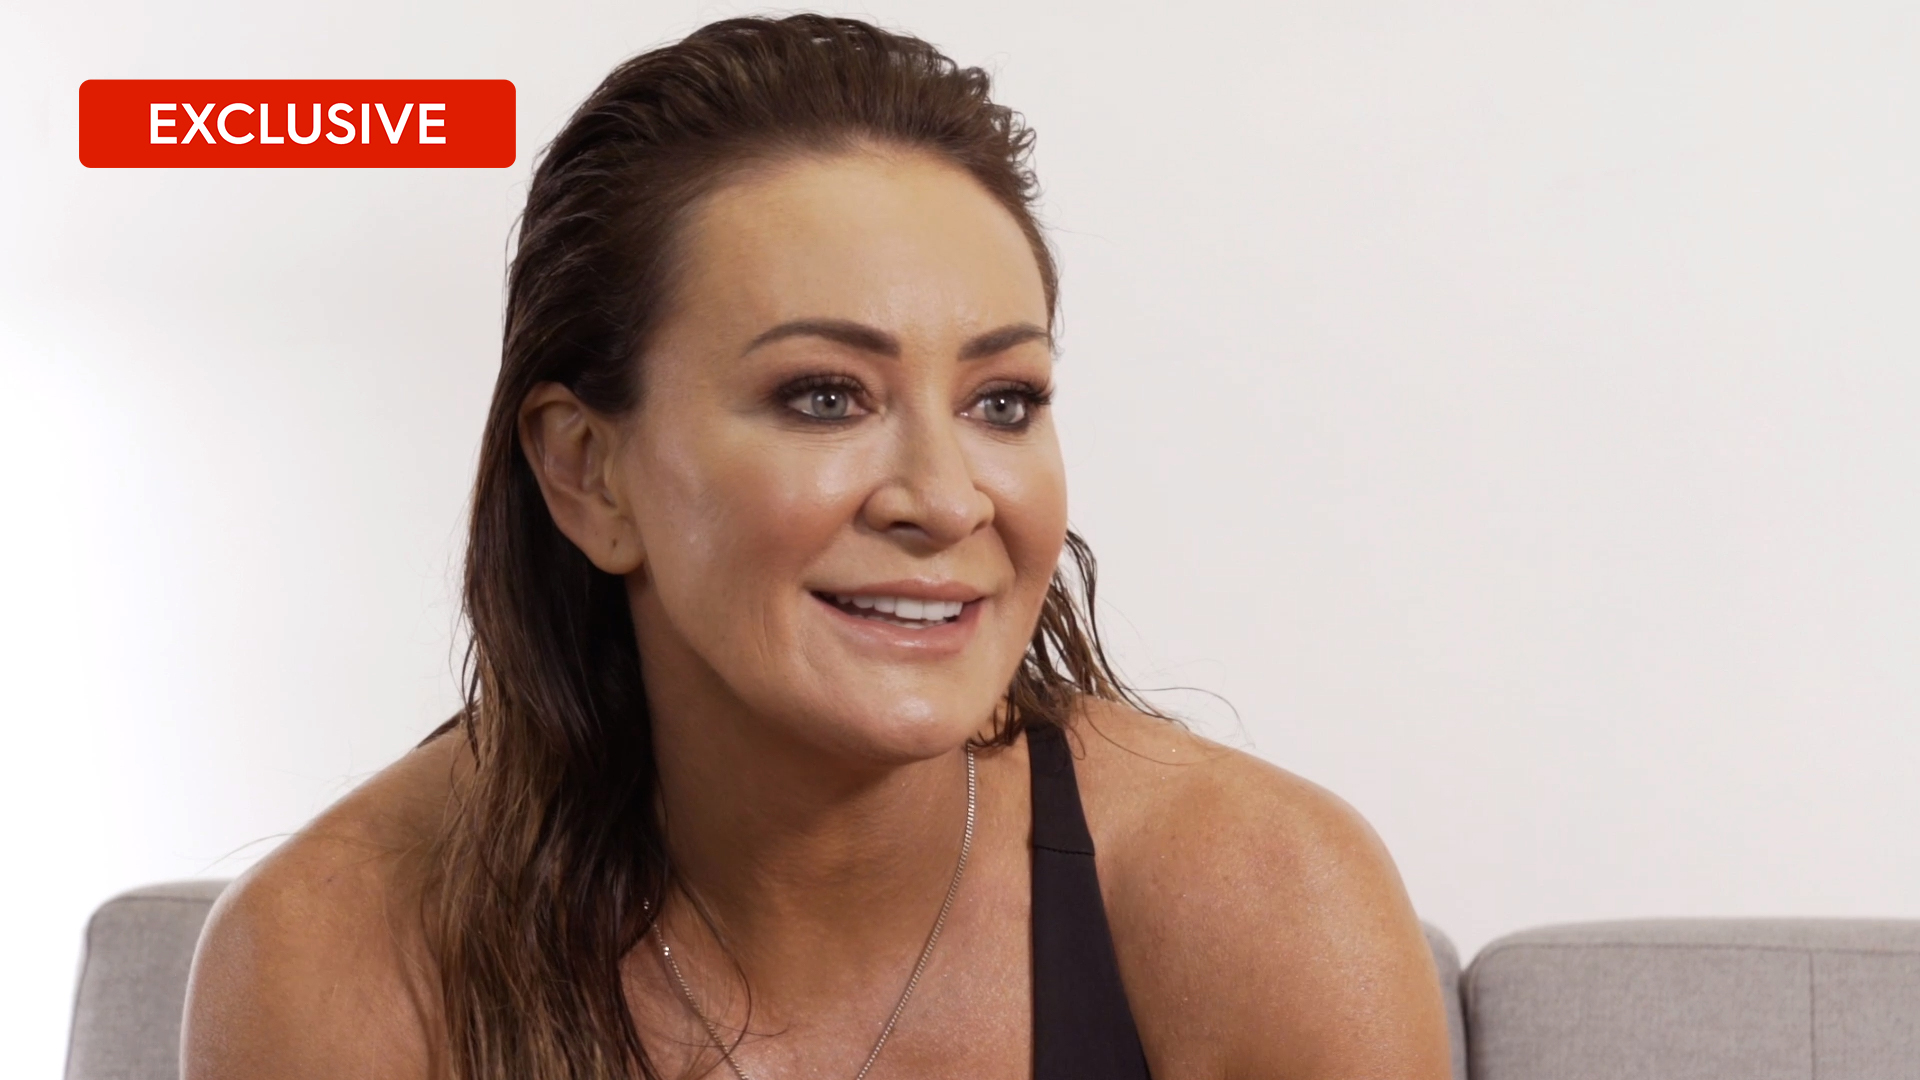 Exclusive: Michelle Bridges reflects on her professional setbacks